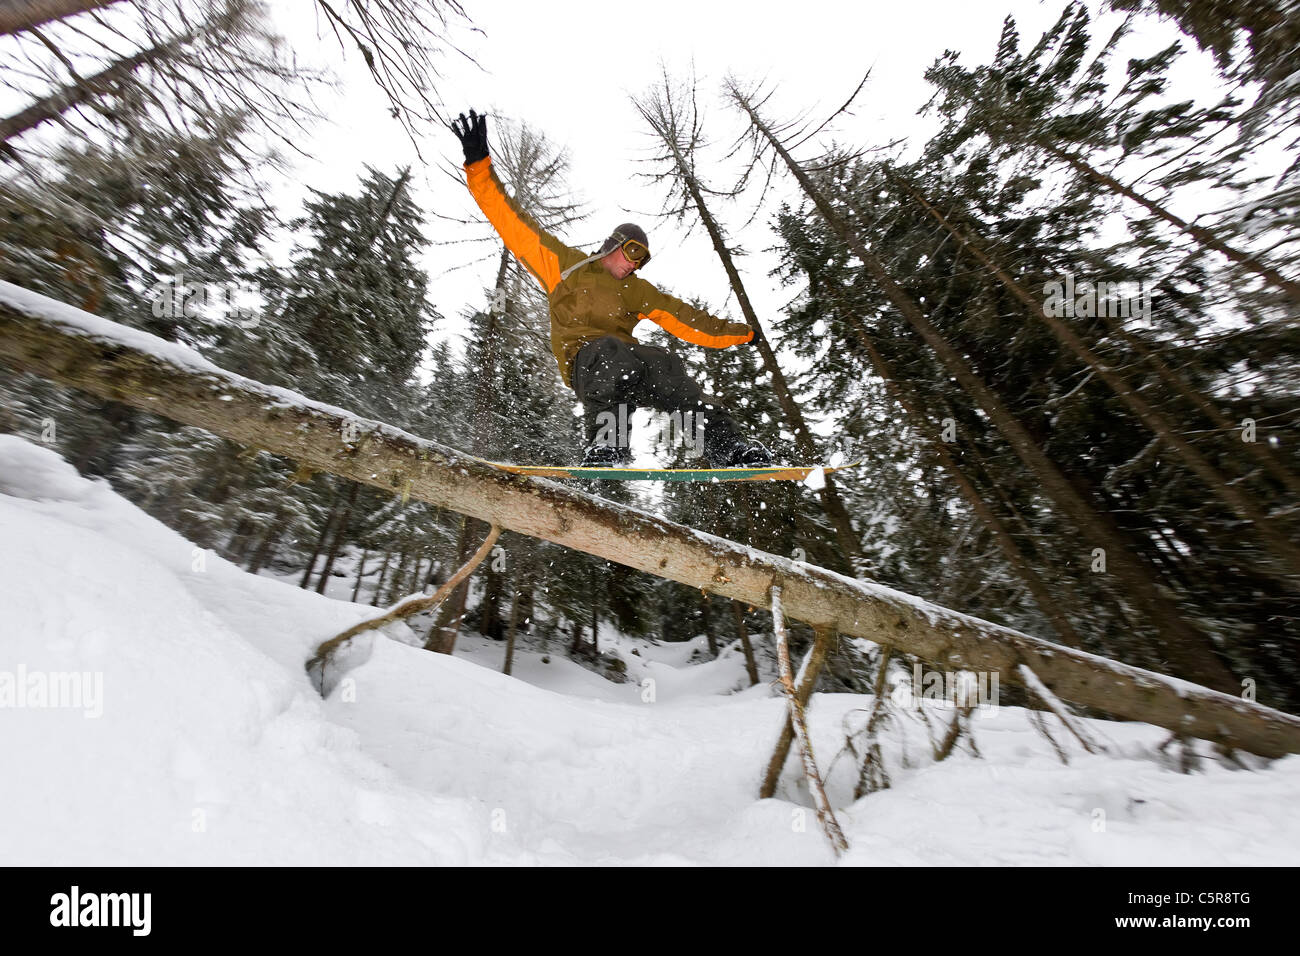 A snowboarder riding the back country sliding over a a fallen tree - Stock Image